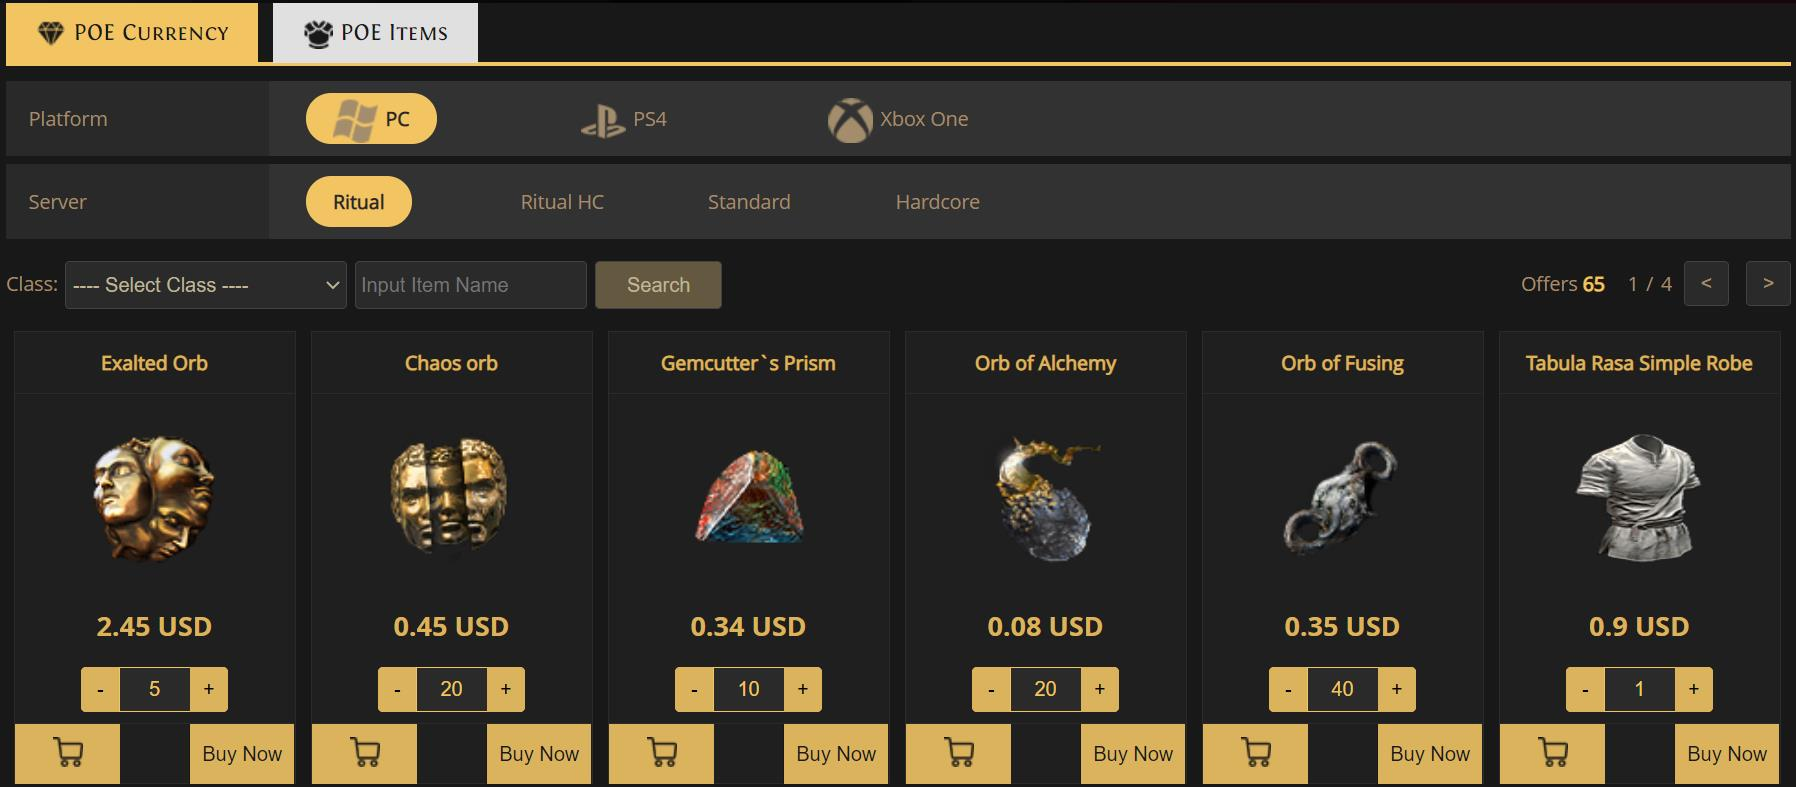 Cheap POE Currency and POE Items Trade